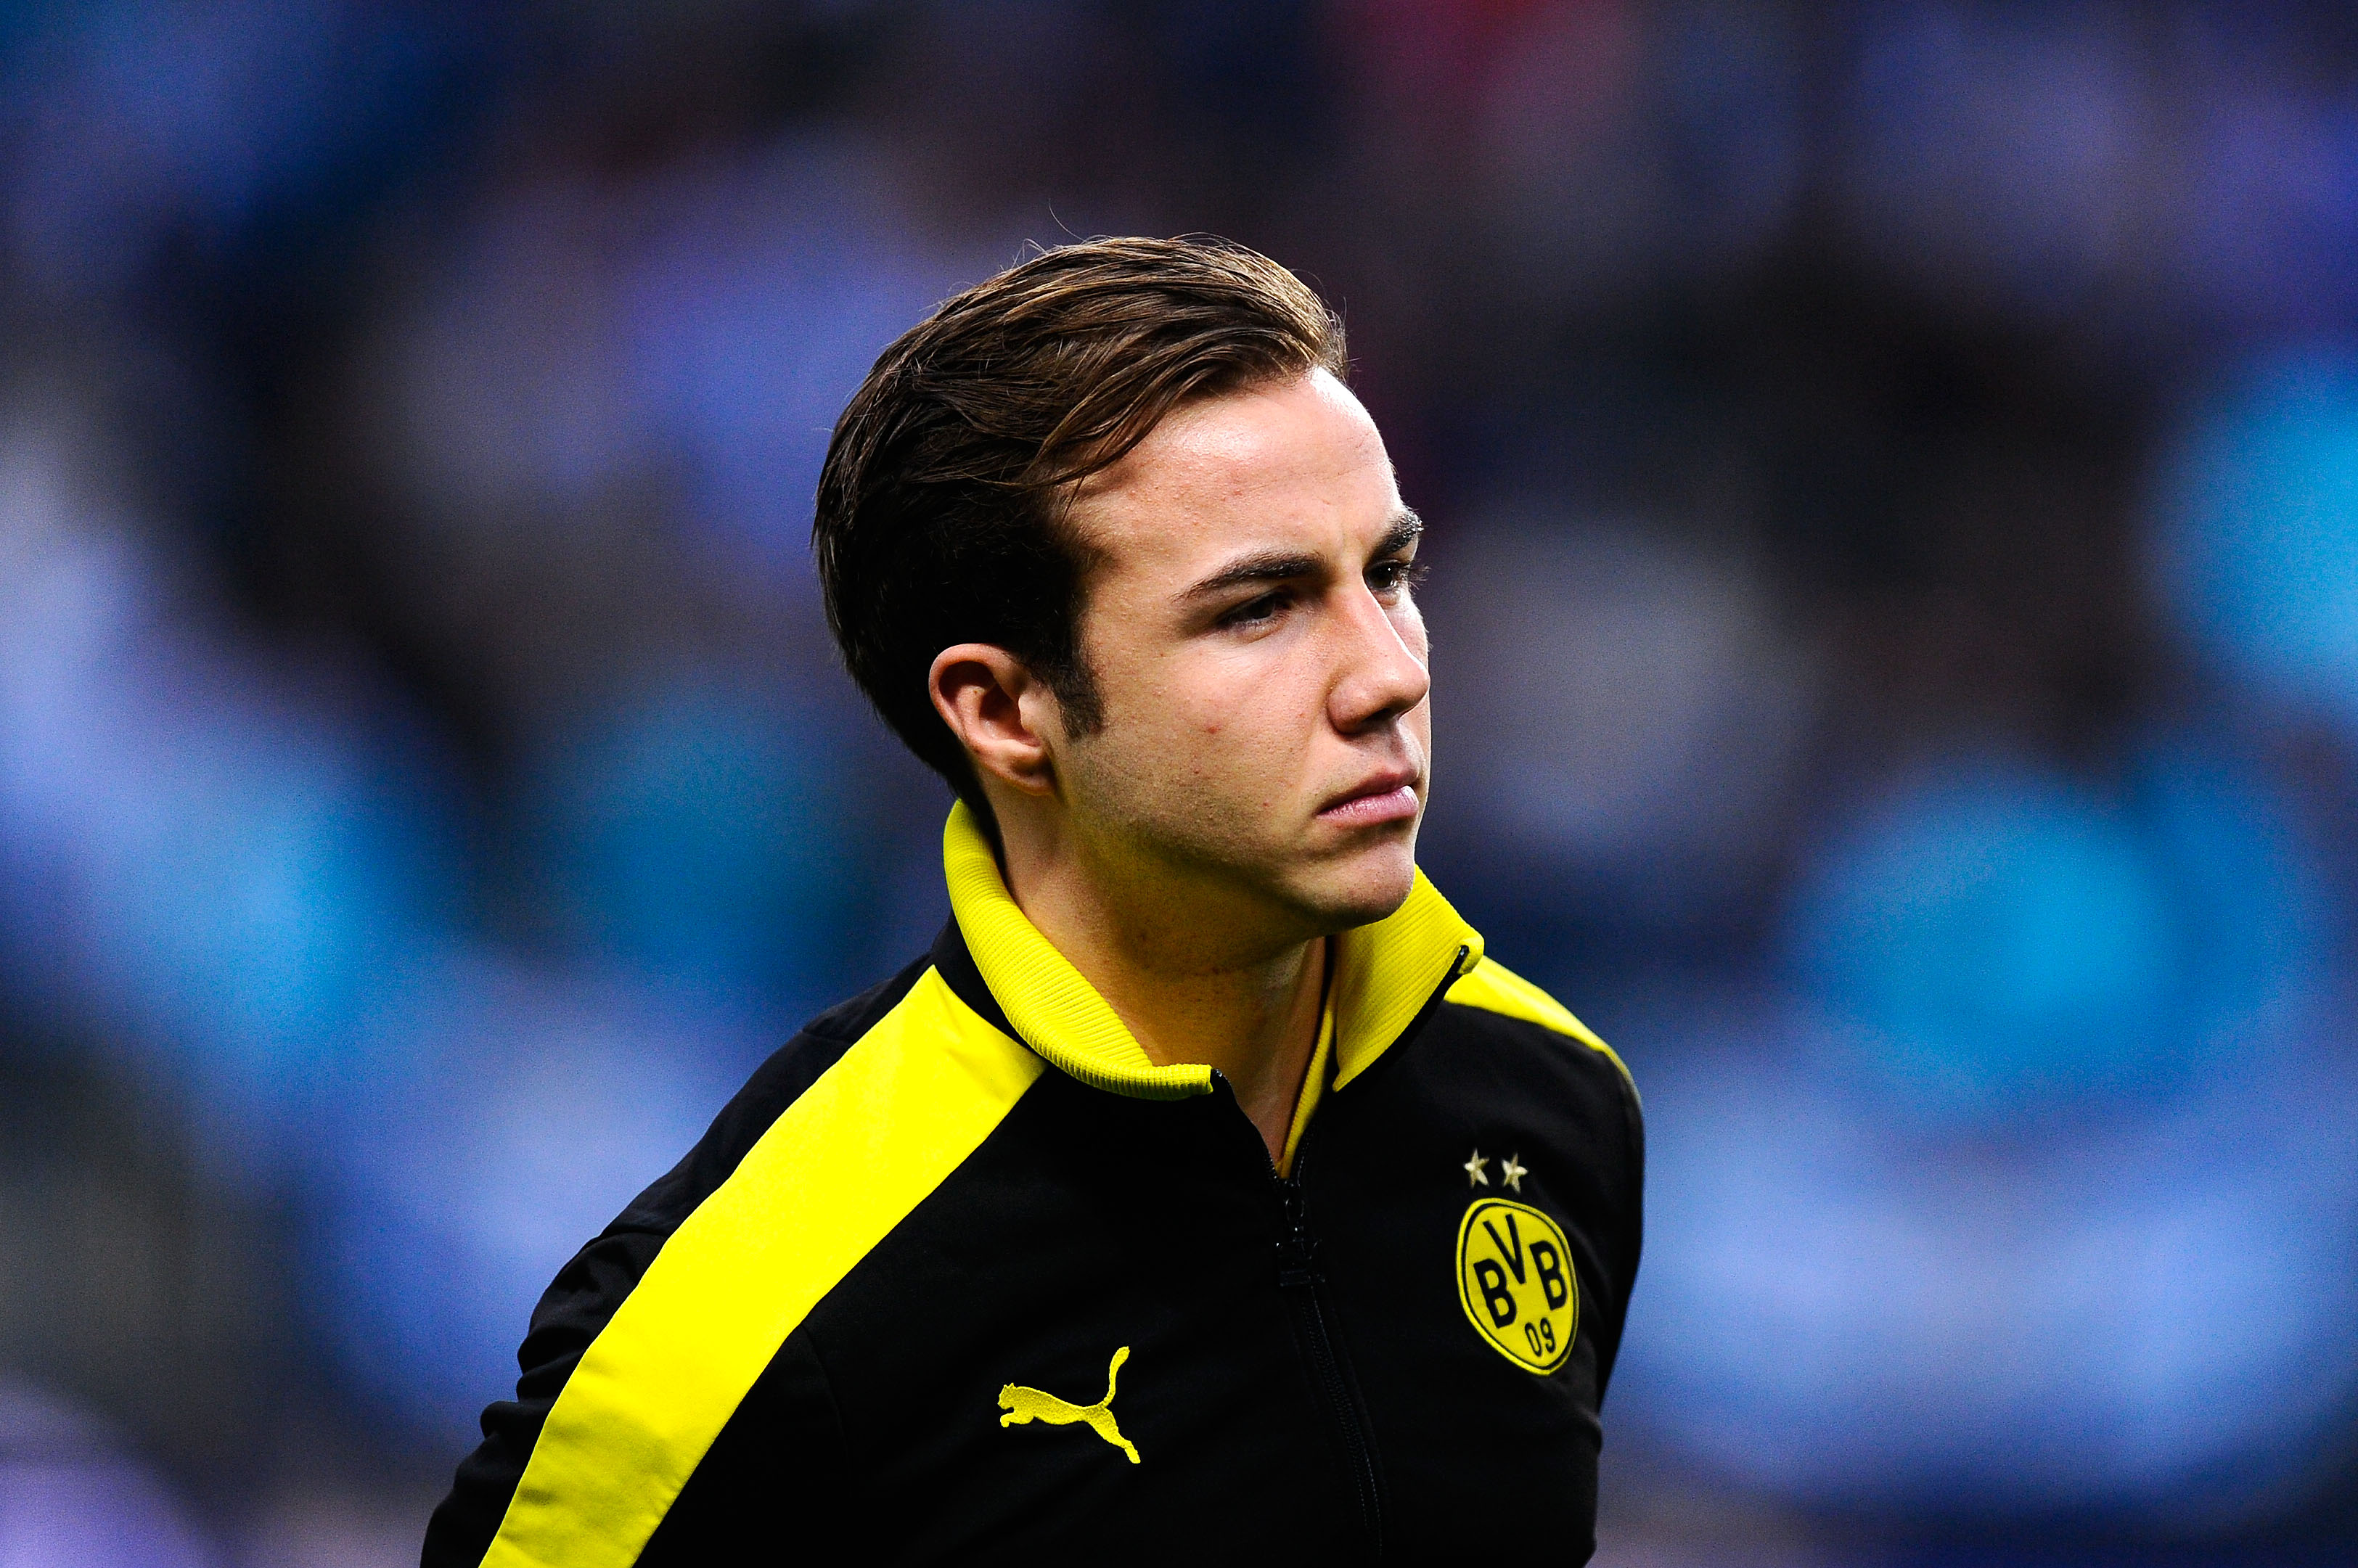 MALAGA, SPAIN - APRIL 03:  Mario Gotze of Borussia Dortmund looks on prior to the UEFA Champions League quarter-final first leg match between Malaga CF and Borussia Dortmund at La Rosaleda Stadium on April 3, 2013 in Malaga, Spain.  (Photo by David Ramos/Getty Images)